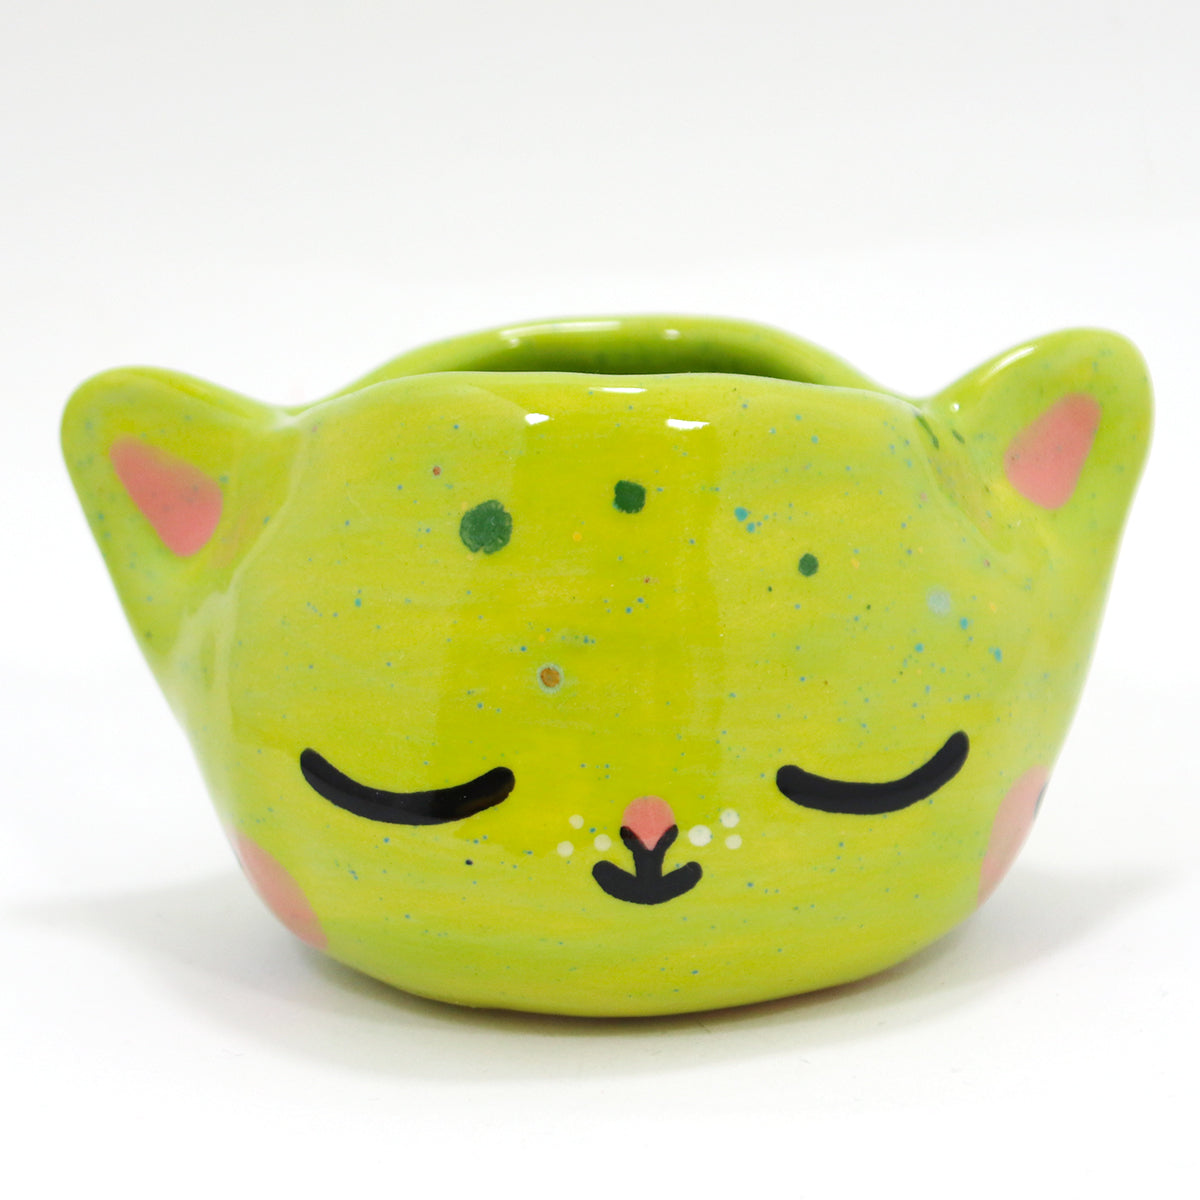 Ceramic Kitty Planter #1387 - S